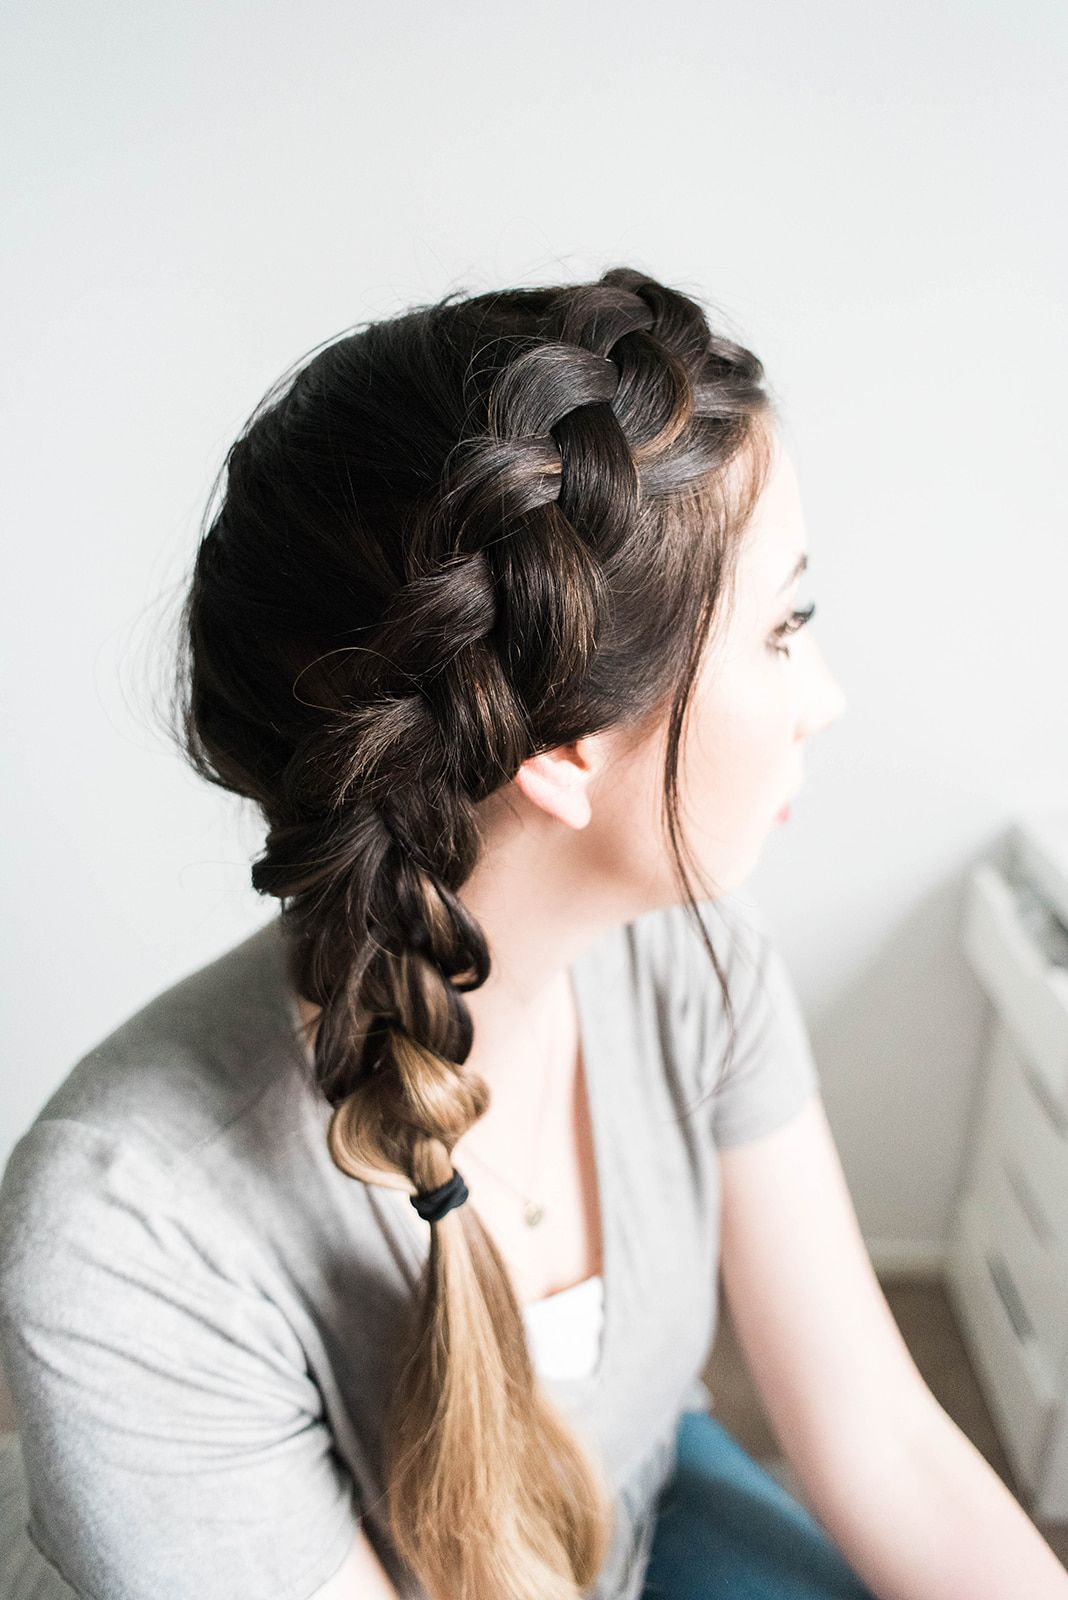 Chunky Side Dutch Braid Tutorial With Images Dutch Braid